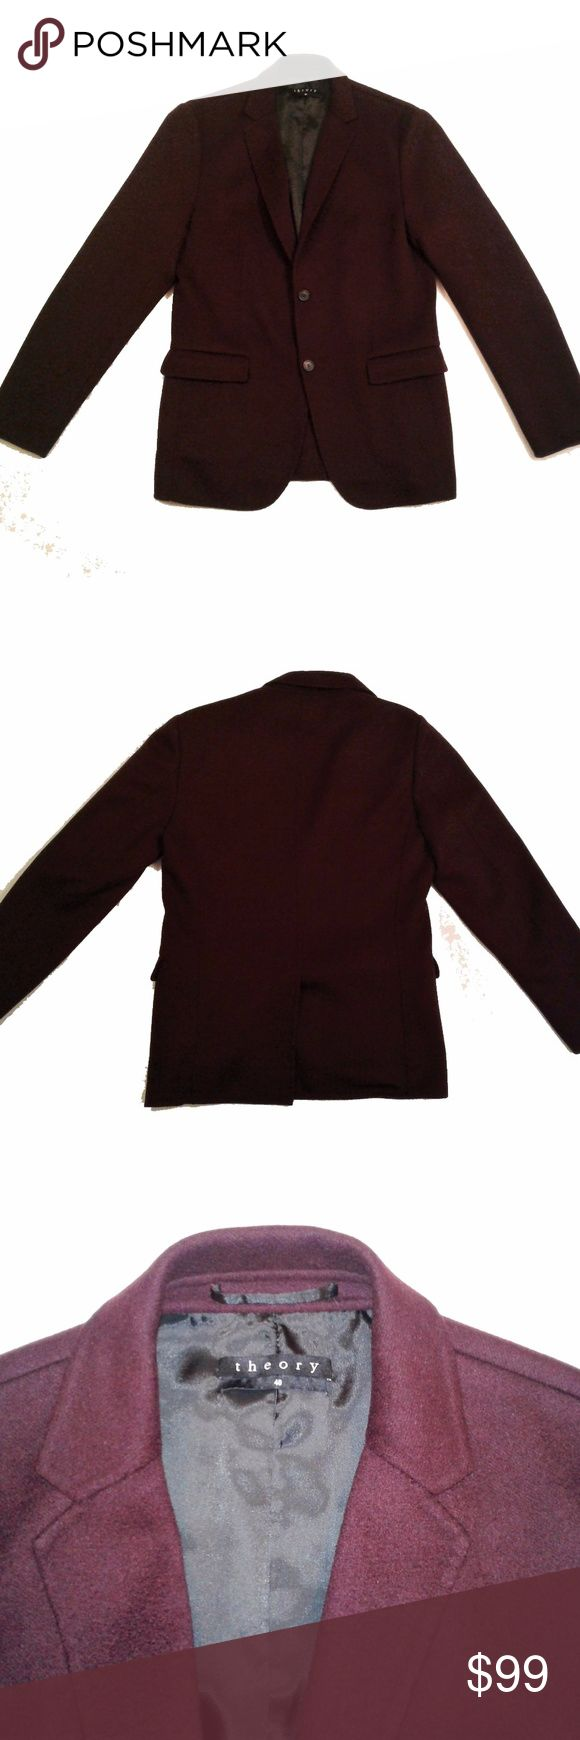 """Theory Burgundy """"Tobius F DW"""" jacket 100% cashmere Description: Theory """"Tobius F DW"""" jacket/sport coat blazer in Reish cashmere Deconstructed silhouette Notch lapel; two-button front Long sleeves Half-lined interior Made of imported Italian material: 100% cashmere (super soft!) Deep wine or burgundy color Excellent used condition Stock photos used to show fit  Approx Measurements: Armpit-to-armpit: 21"""" Length of body from back collar to hem: 29"""" Length of sleeve from shoulder seam to cuff…"""